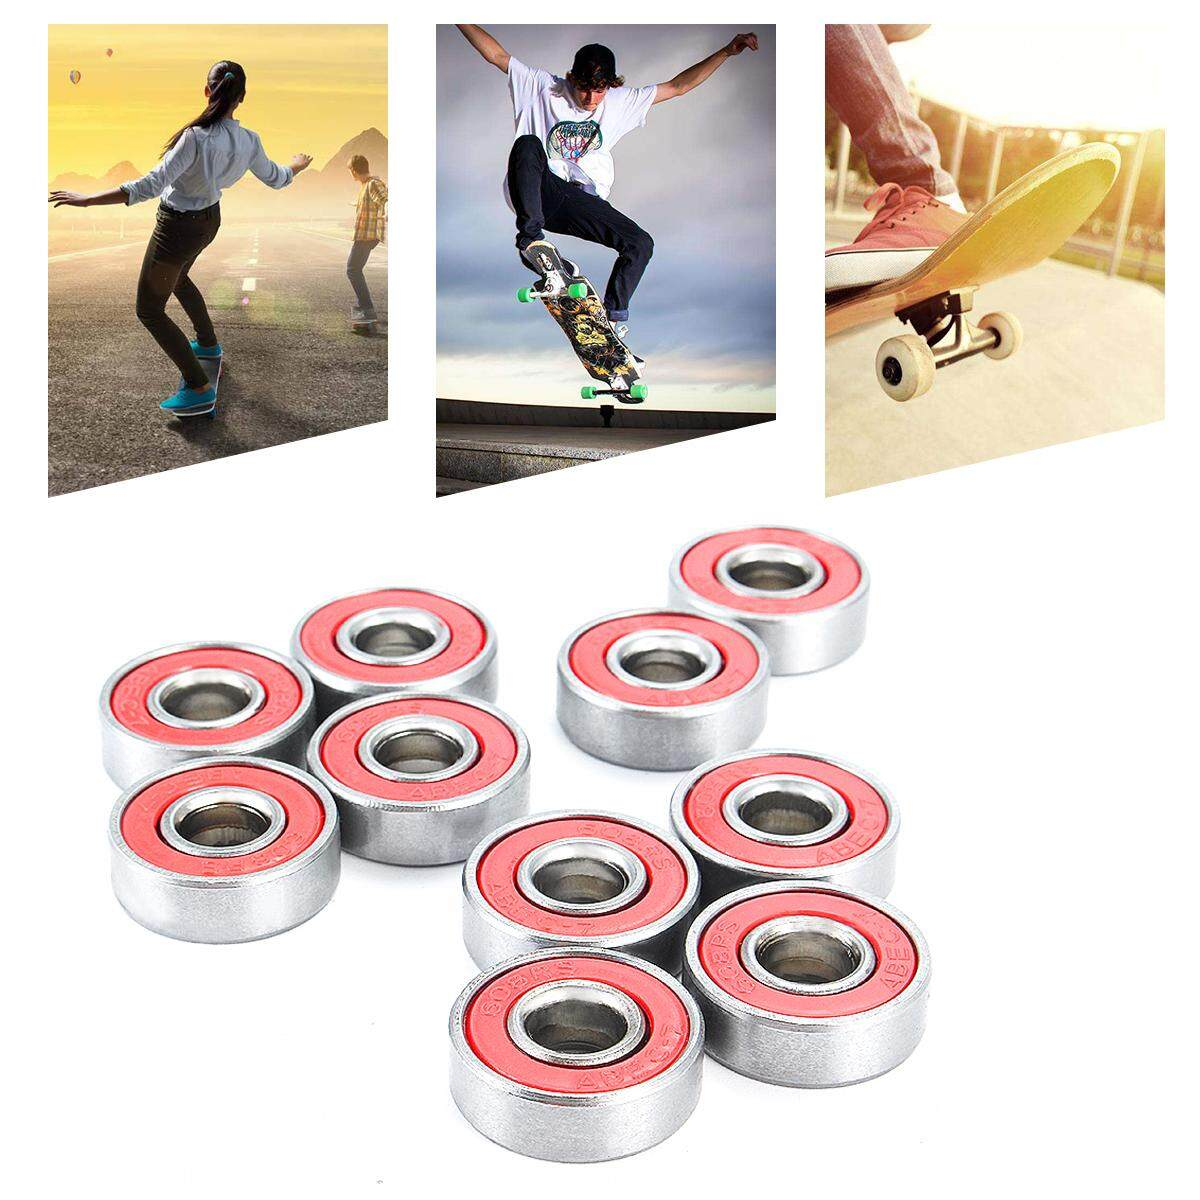 10pcs Abec-7 608rs Skate Scooter Skateboard Wheels Spare Bearings Ball Roller By Teamwin.